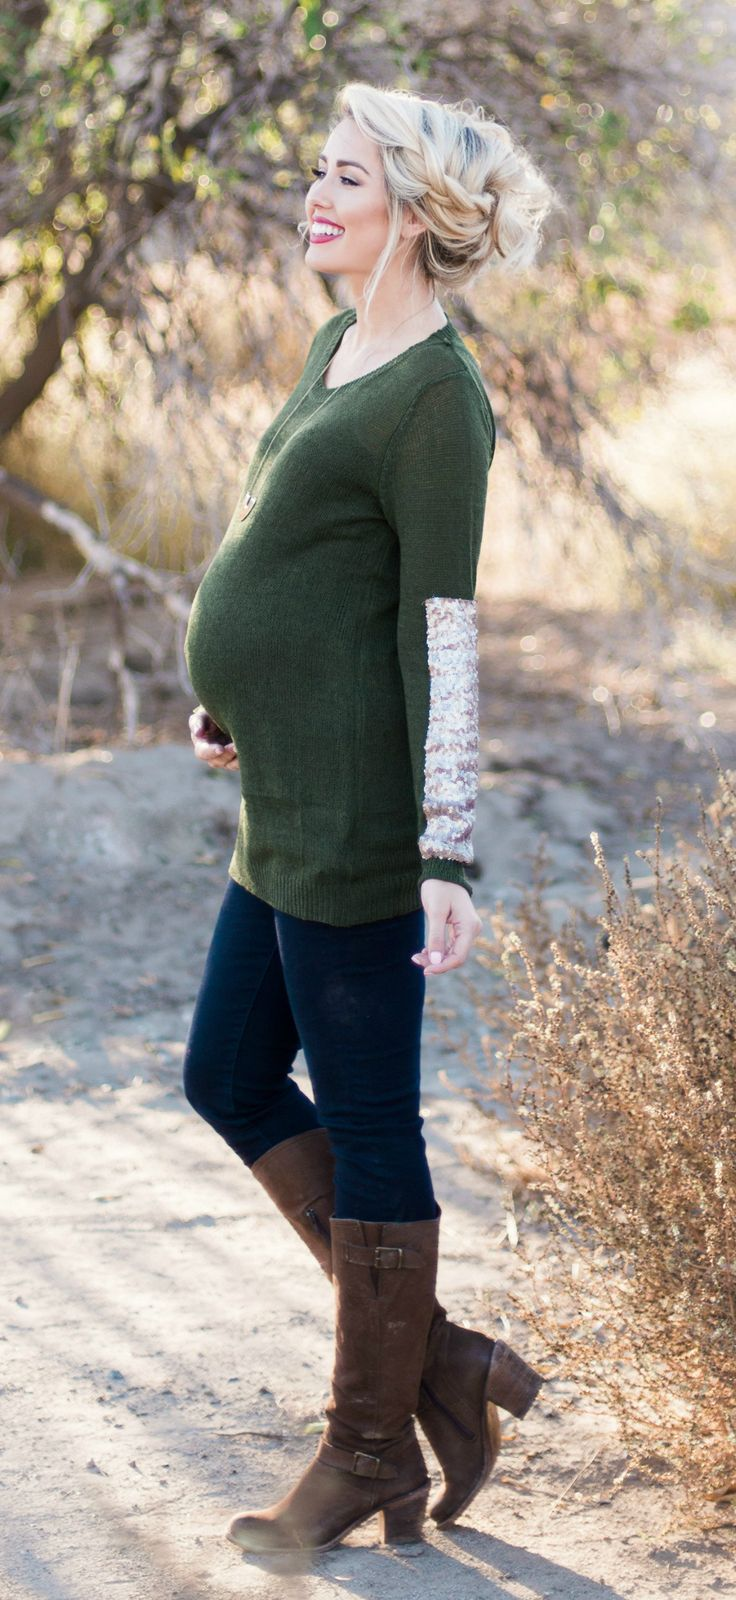 If you want to make sure you stay glamorous for the fall season, this accent sleeve knit maternity sweater is the perfect piece for you. Pair this stylish maternity top with your favorite dark wash maternity jeans, and you're ready for endless holiday parties this season.